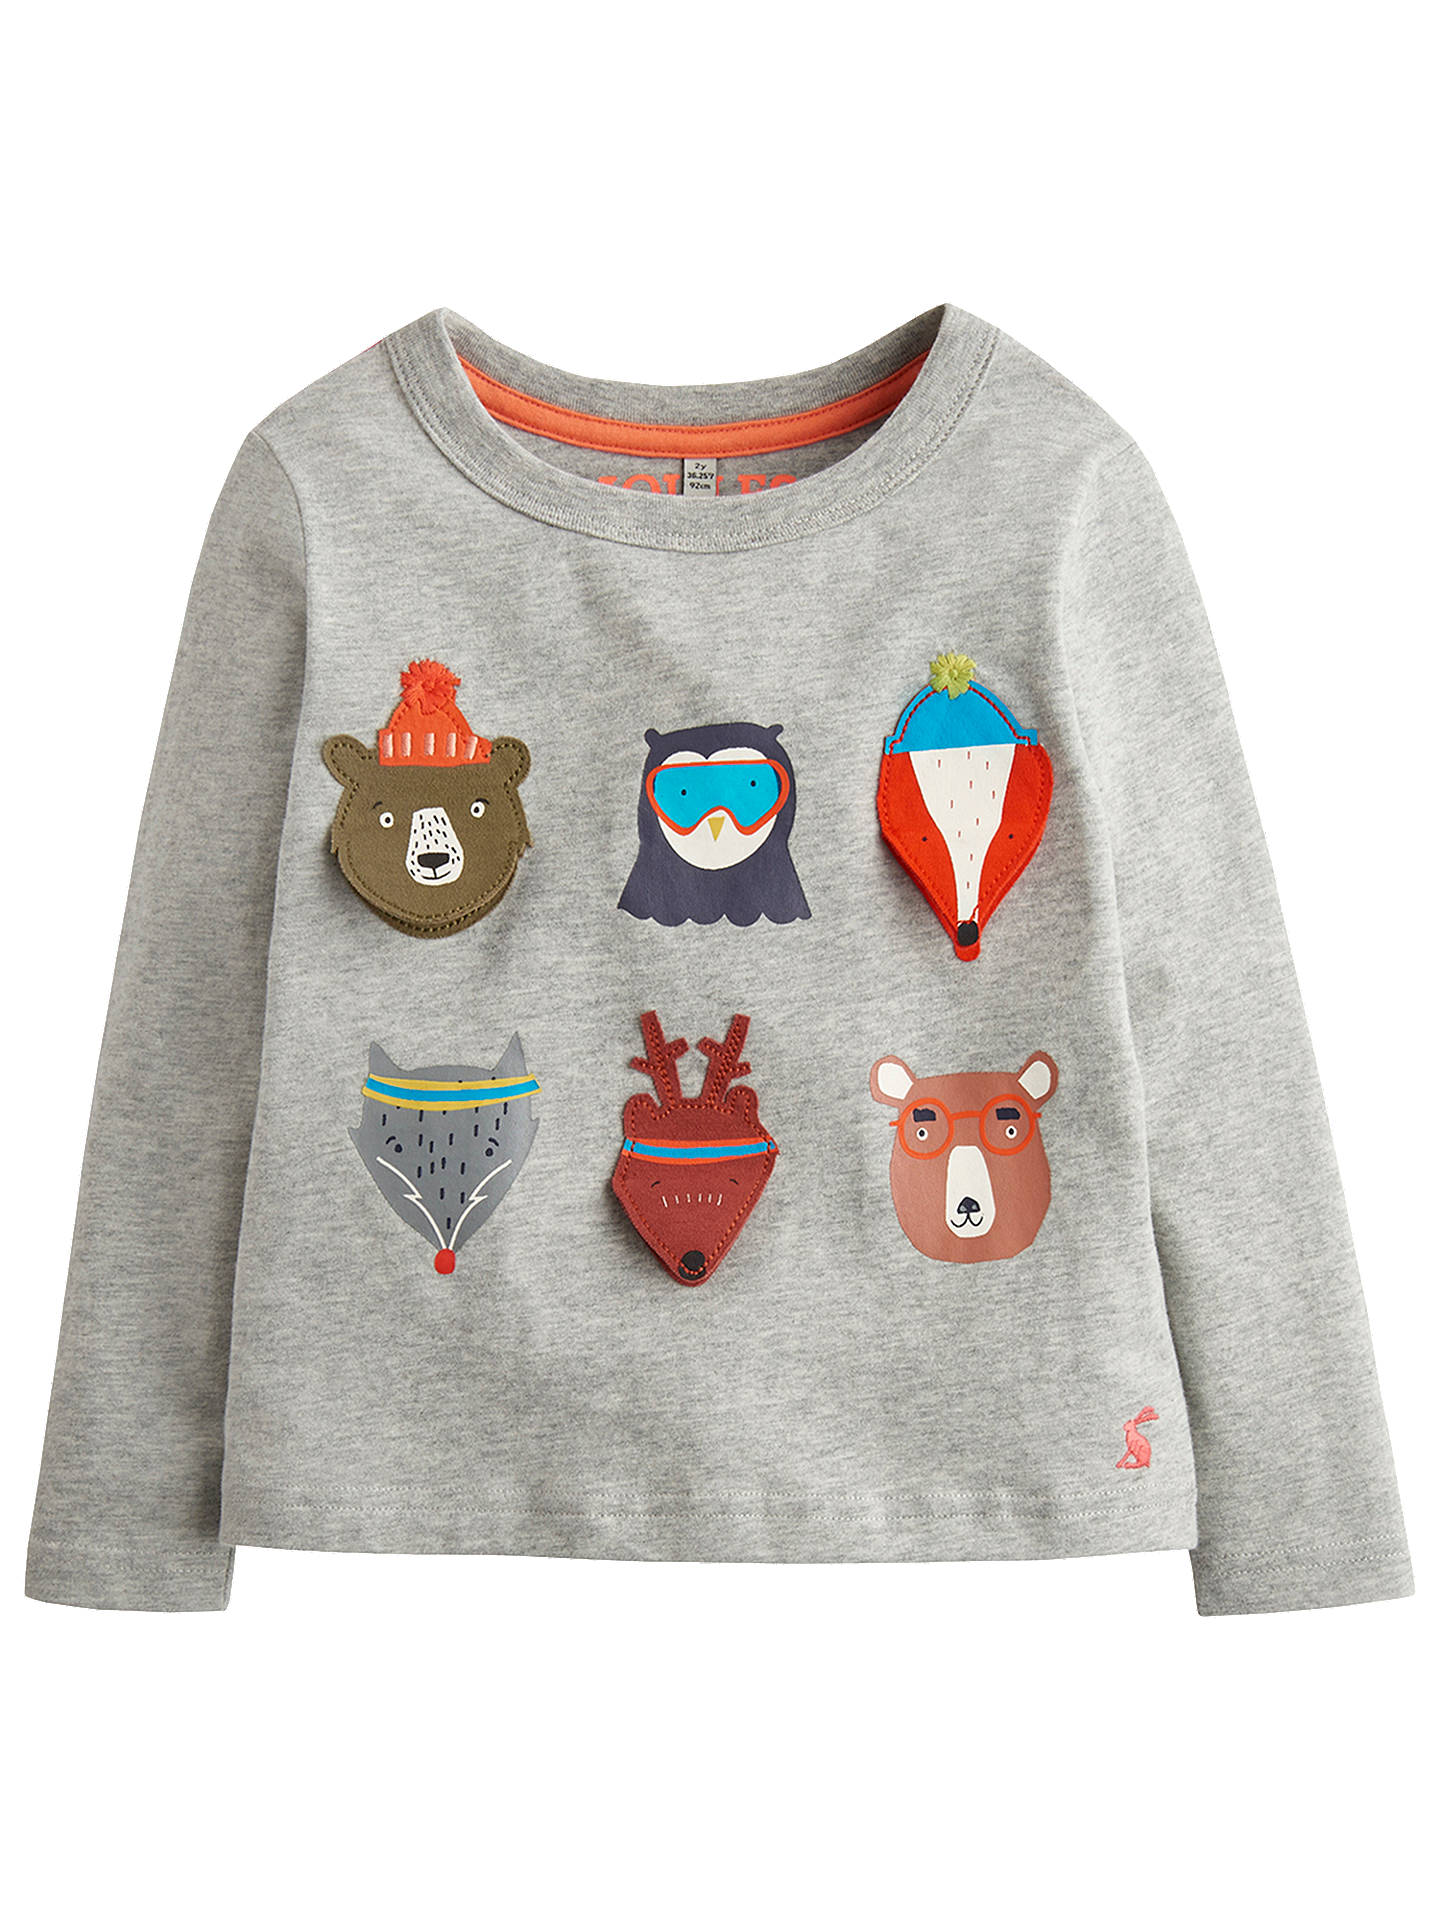 09efd06a9 Little Joule Boys' Chomp Animal T-Shirt, Grey at John Lewis & Partners